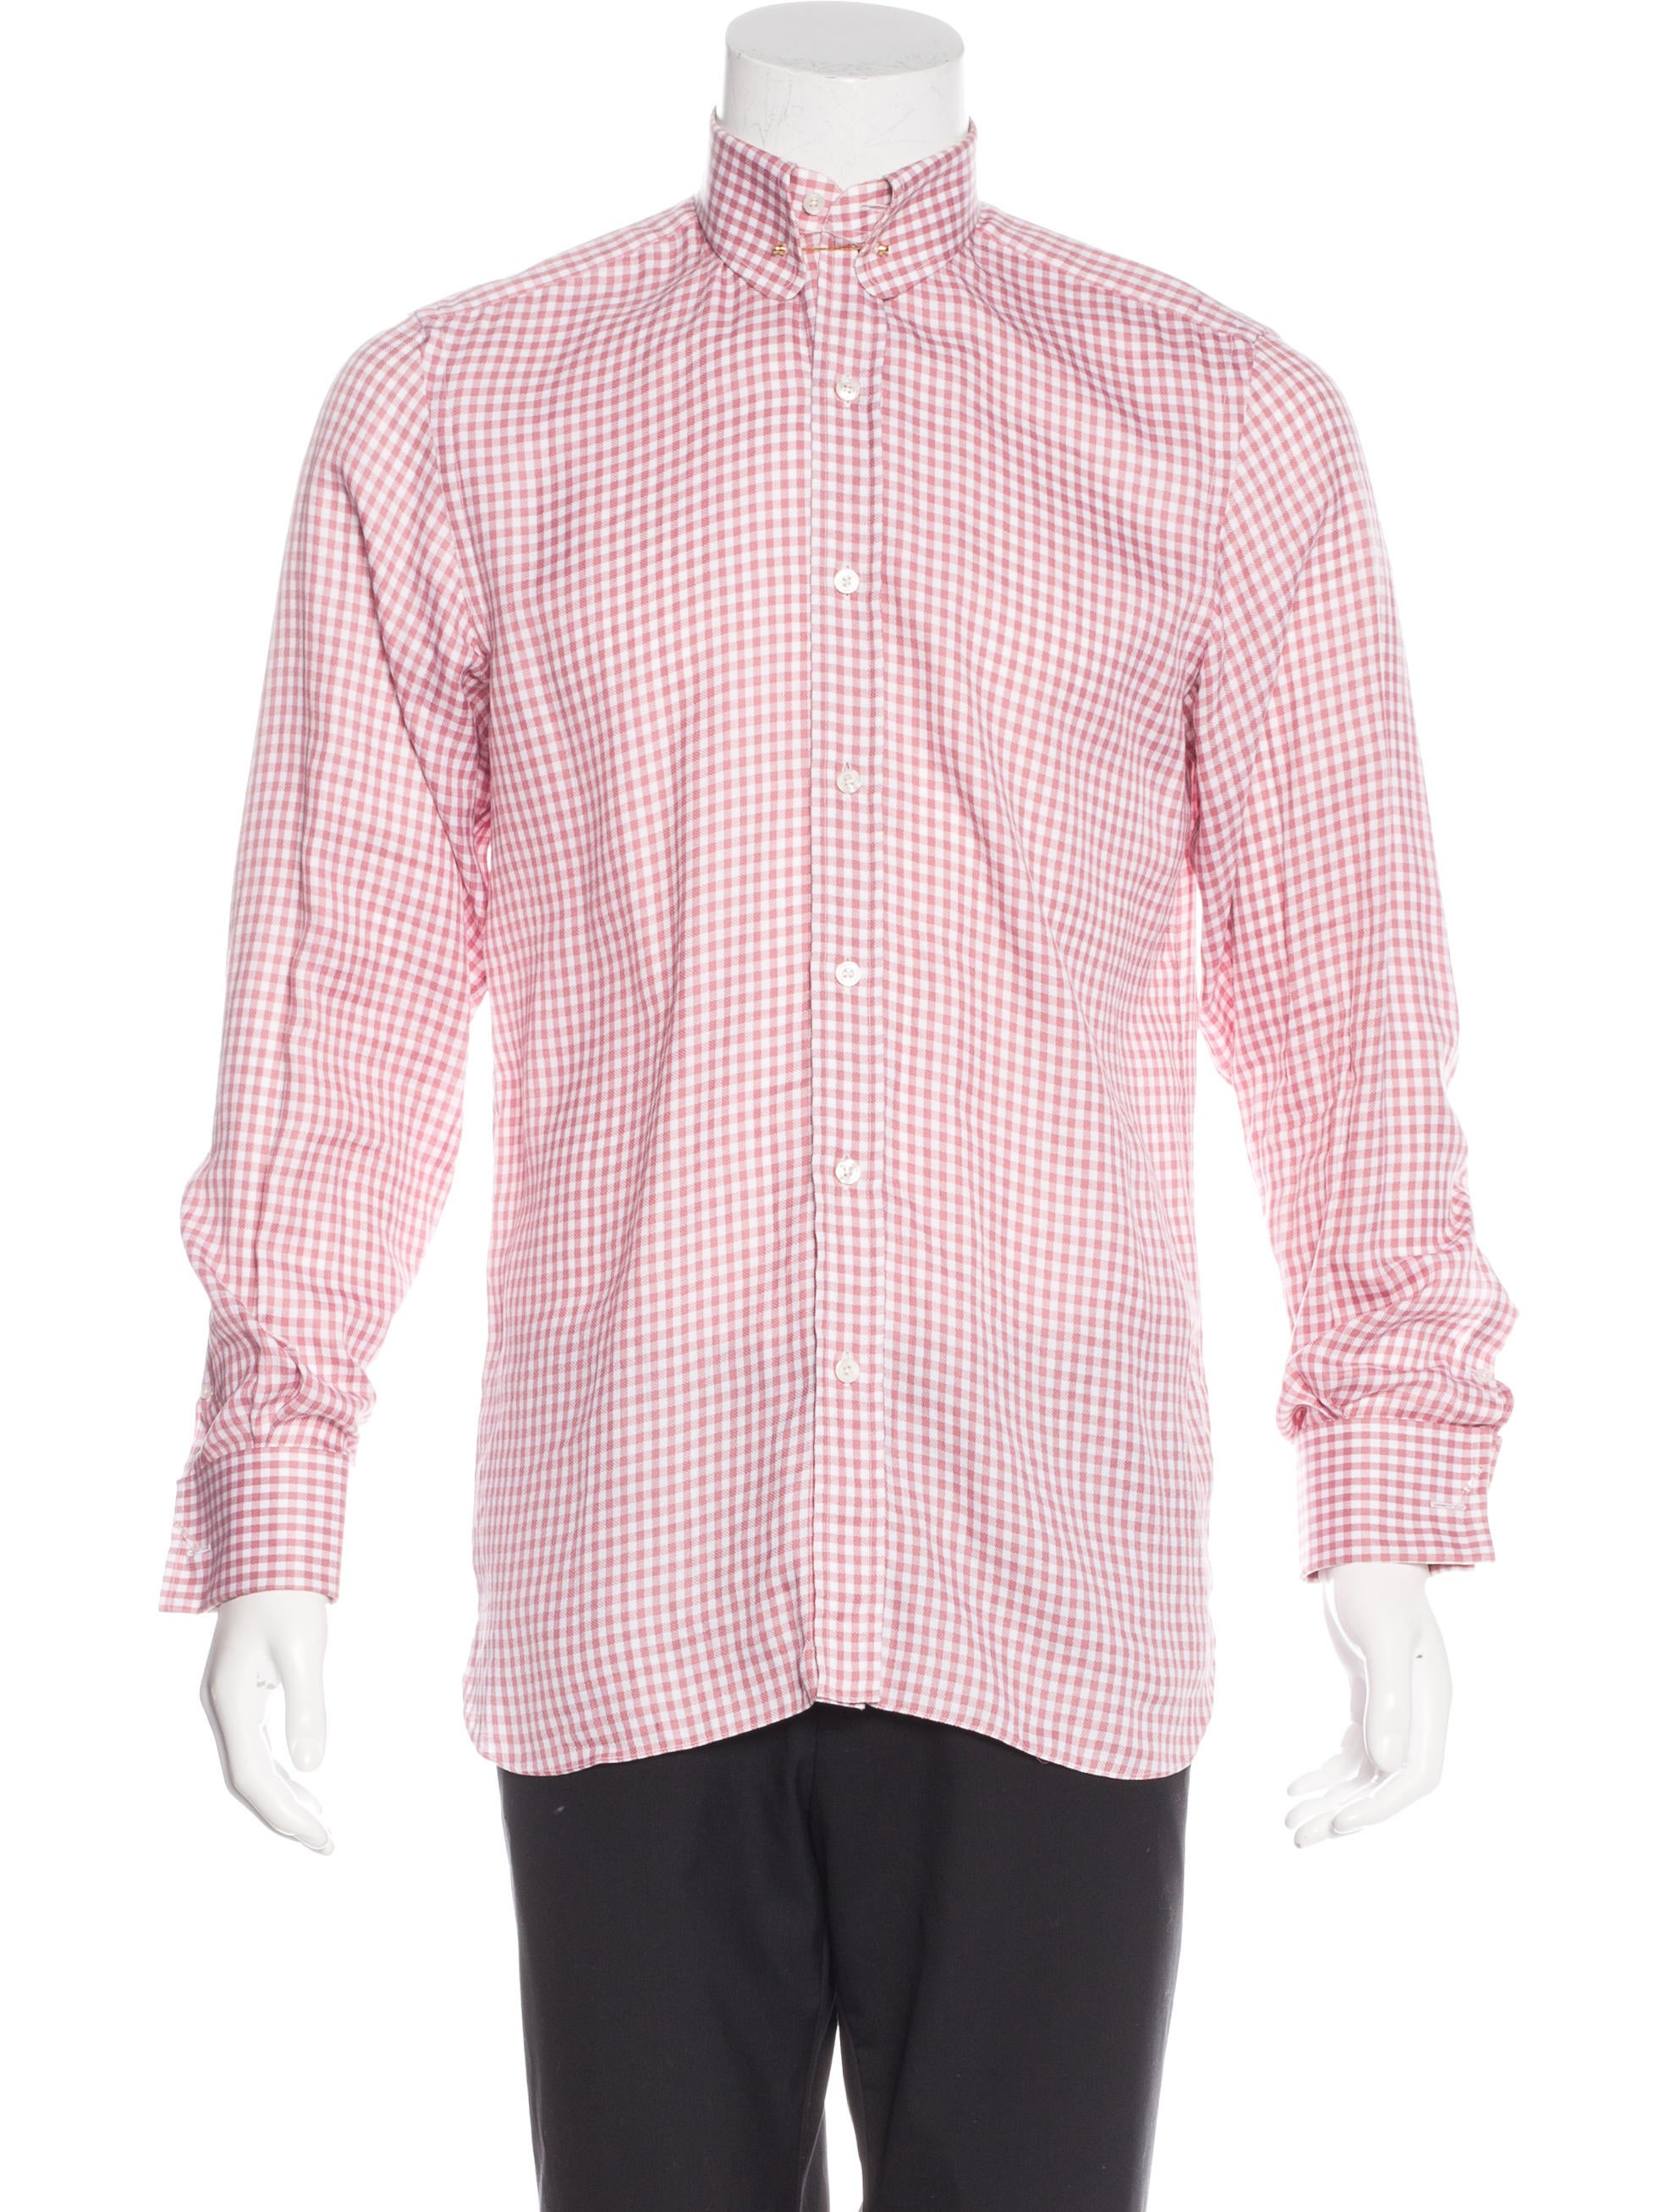 Tom Ford Gingham French Cuff Shirt W Tags Clothing